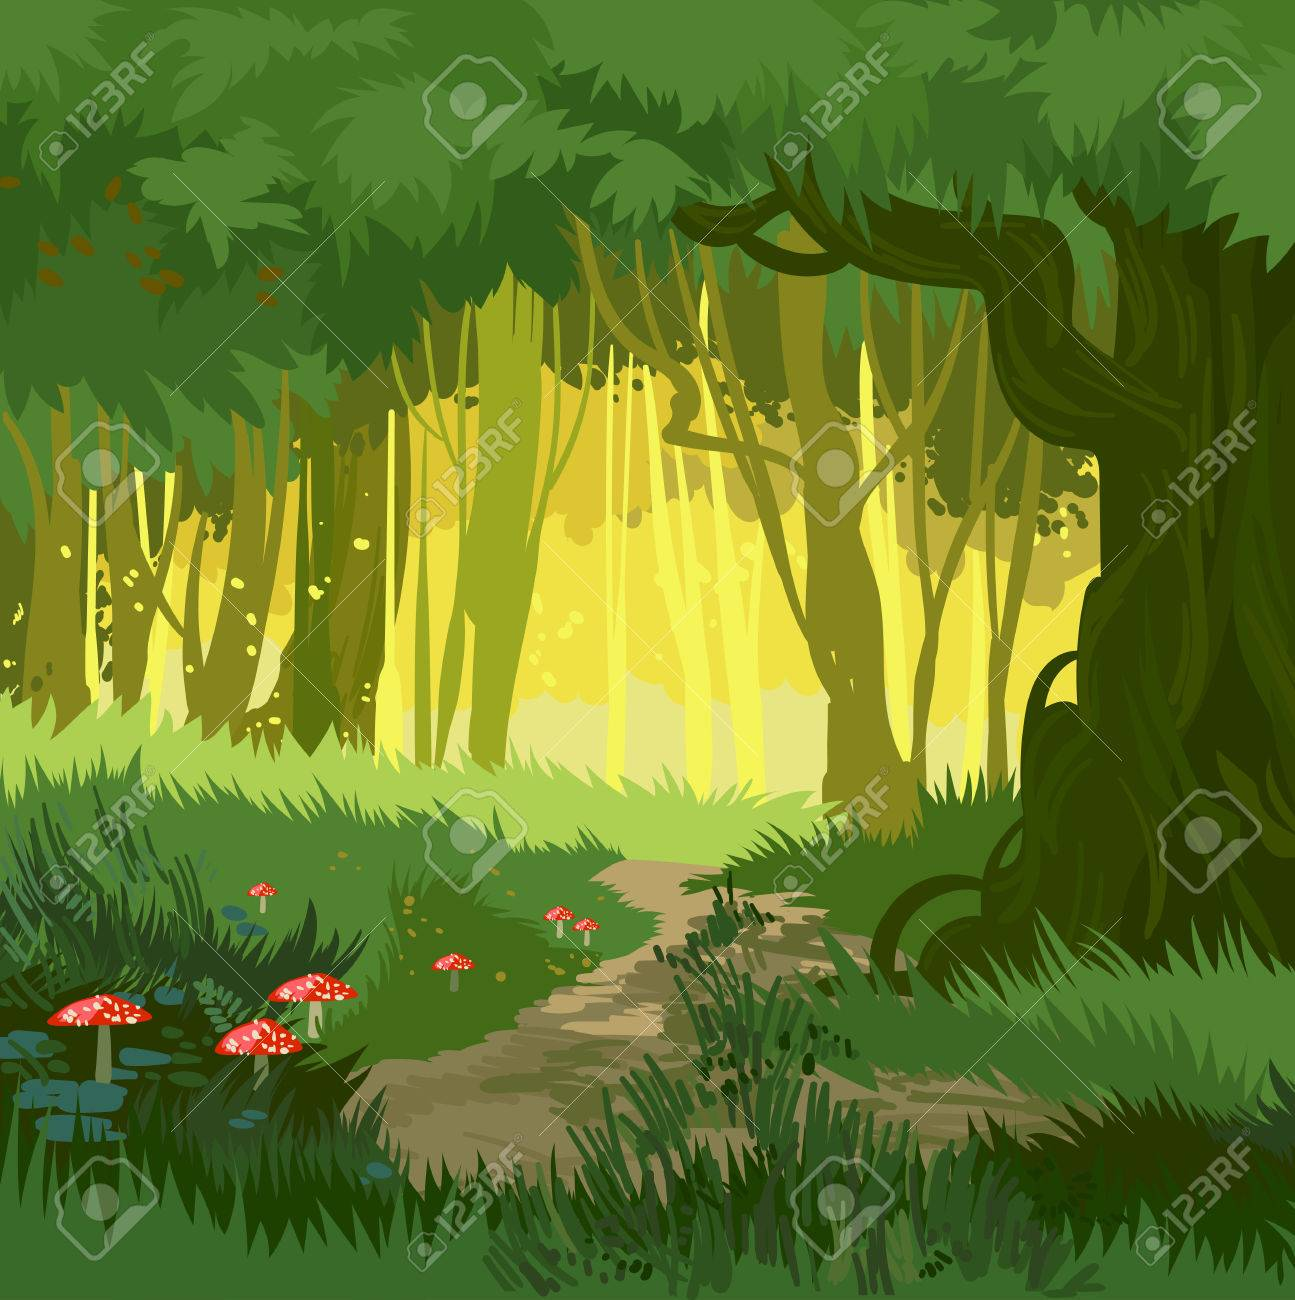 Fabulous bright green summer forest vector background jungle with toadstool and mushrooms and forest path cartoon style - 82815386